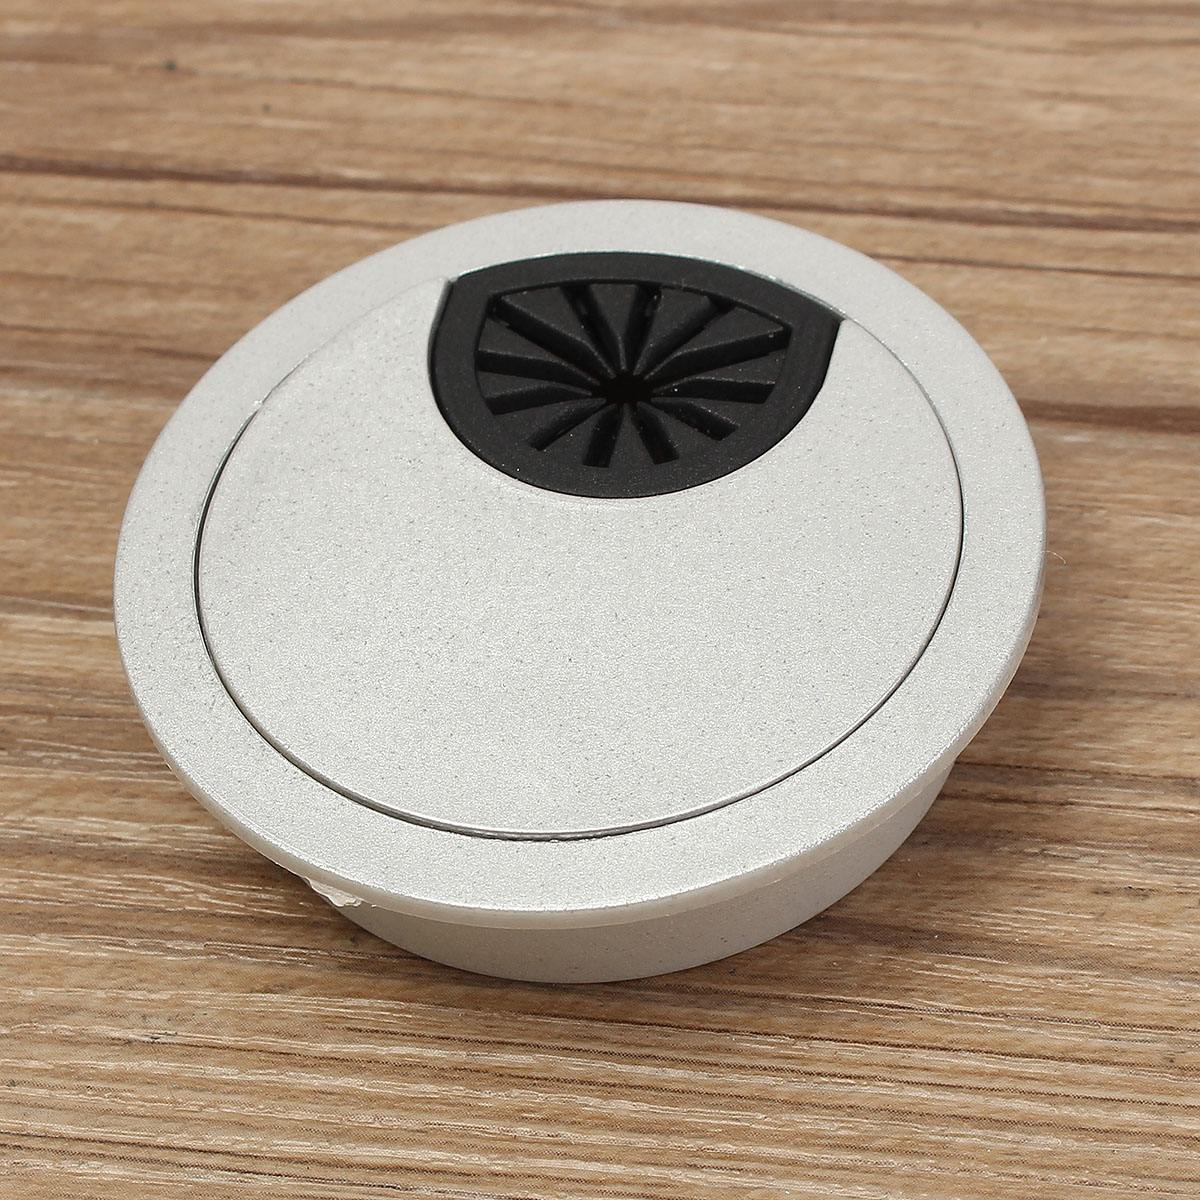 1pcs-50mm-abs-plastic-table-cable-outlet-computer-grommet-port-surface-line-box-desk-wire-hole-cover-base-furniture-hardware